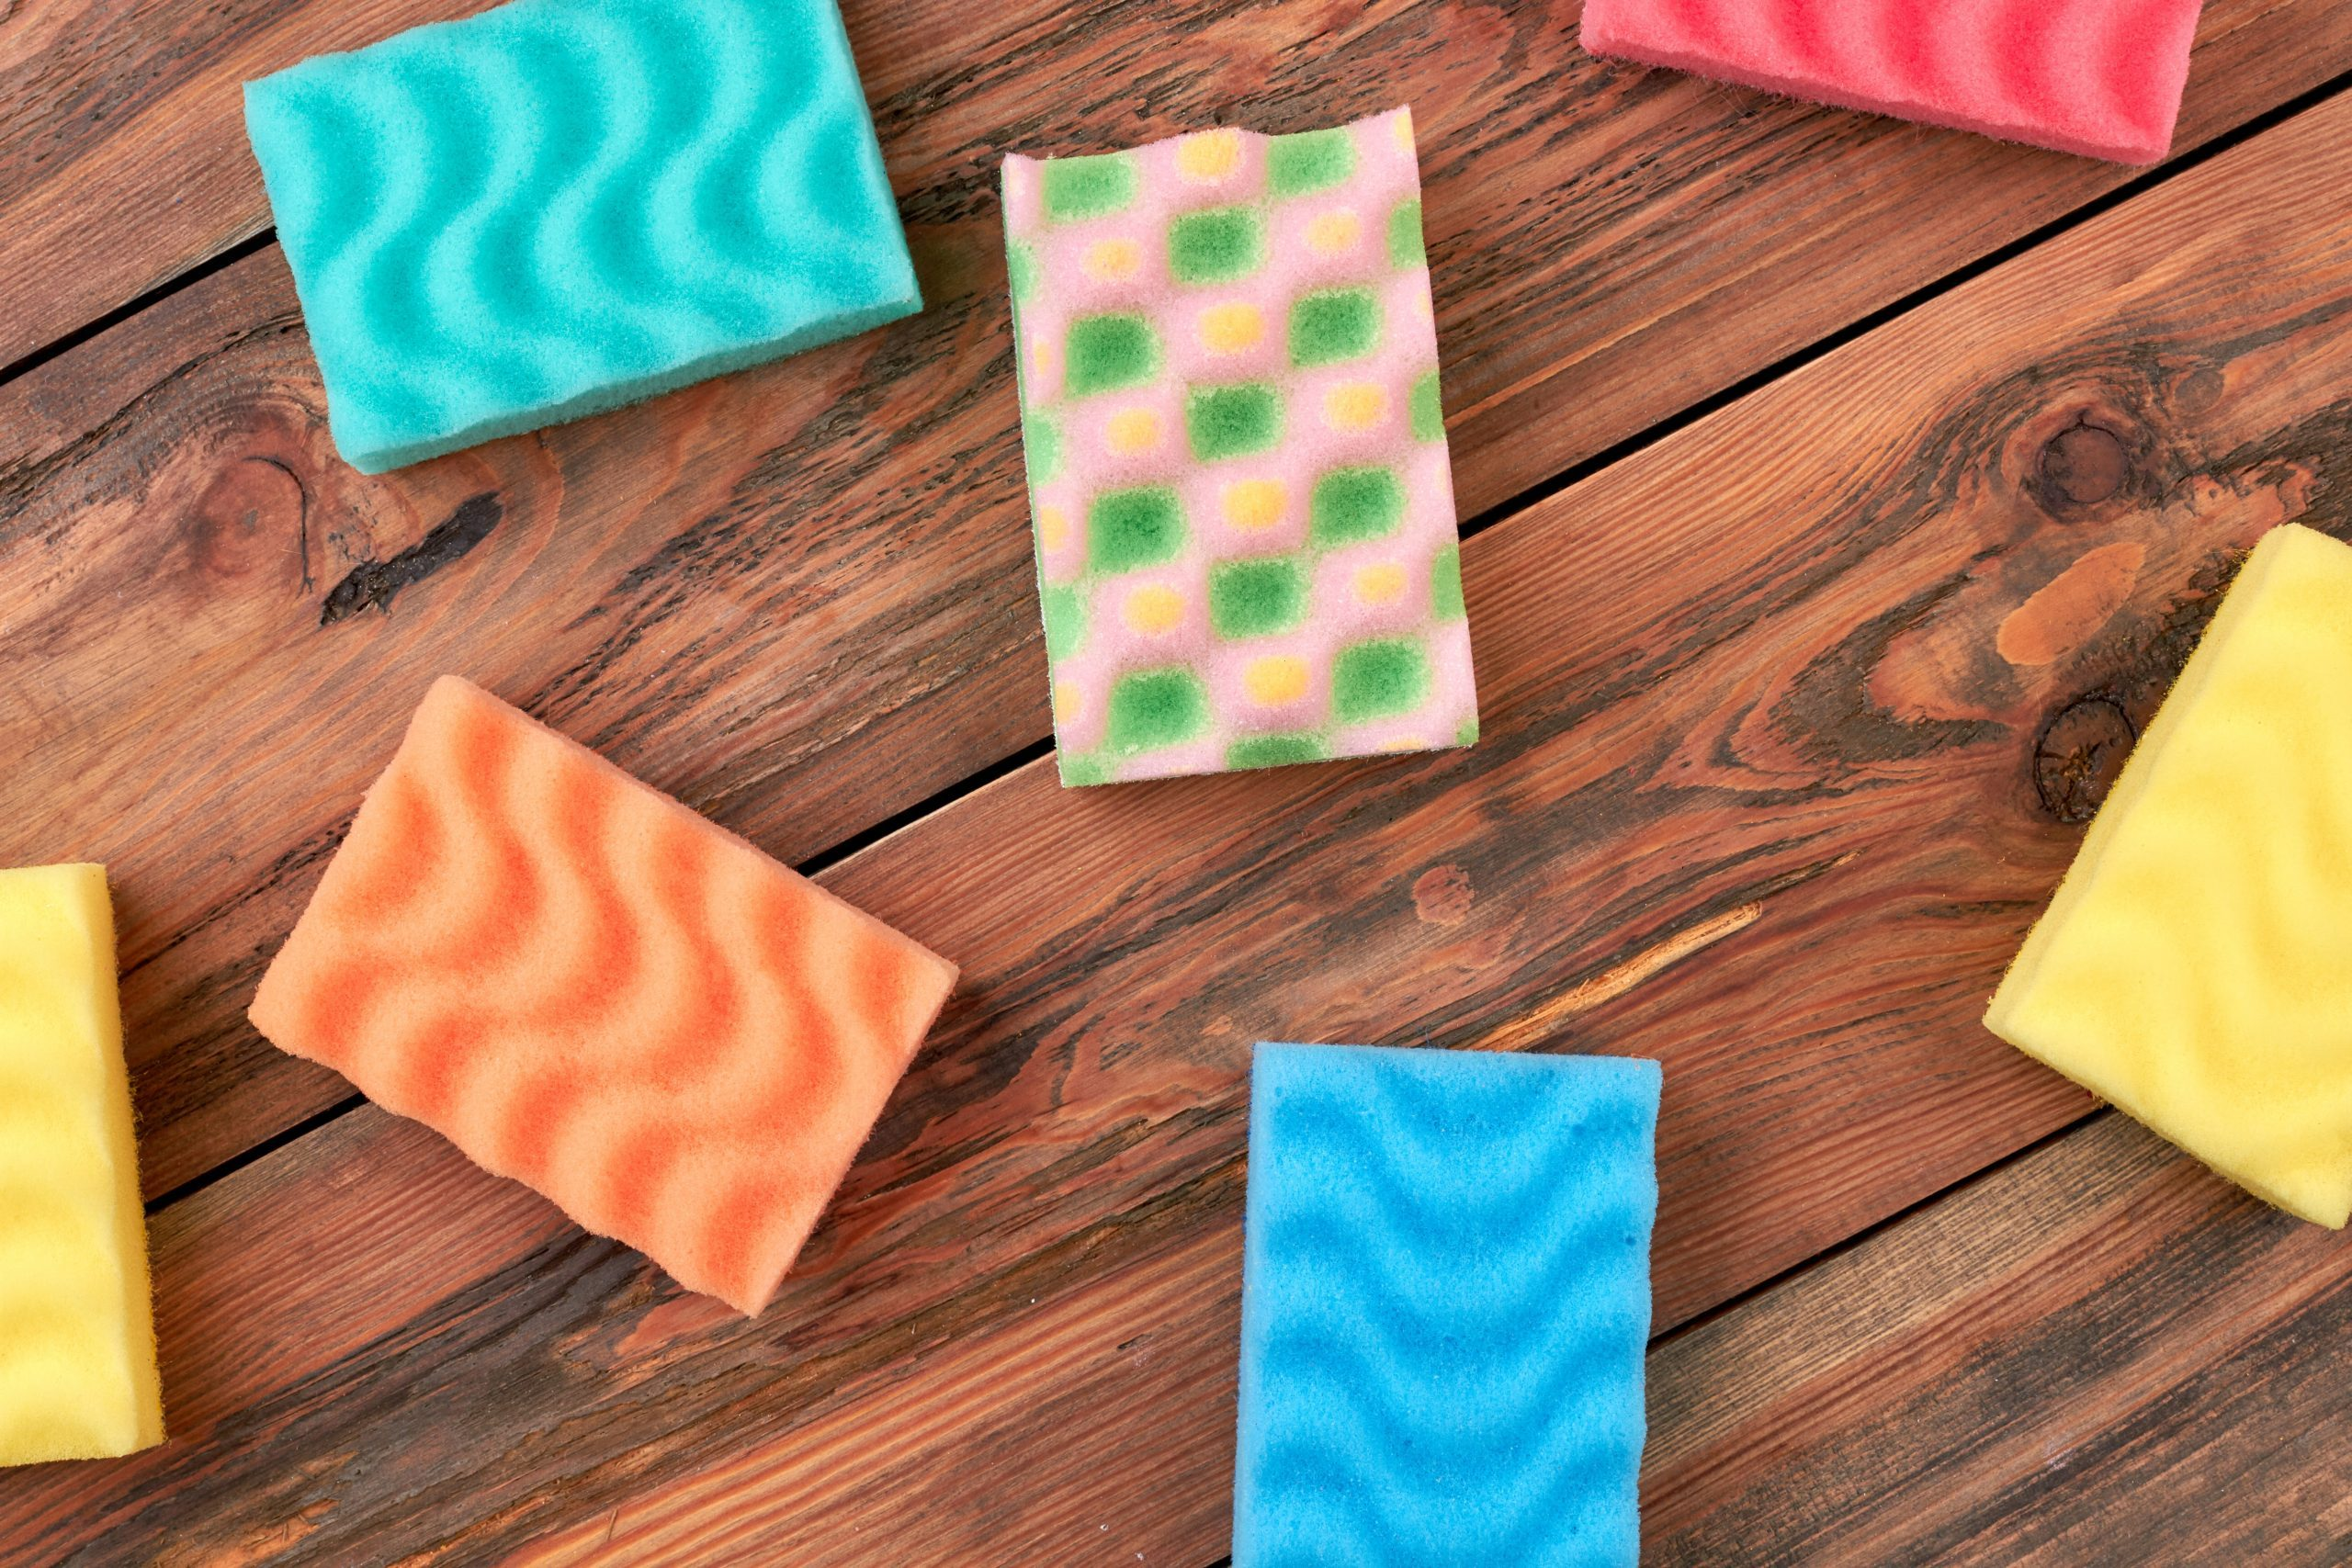 Group of multicolored kitchen sponges. Set of colorful sponges for kitchen on wooden background. Housekeeping and cleaning concept.